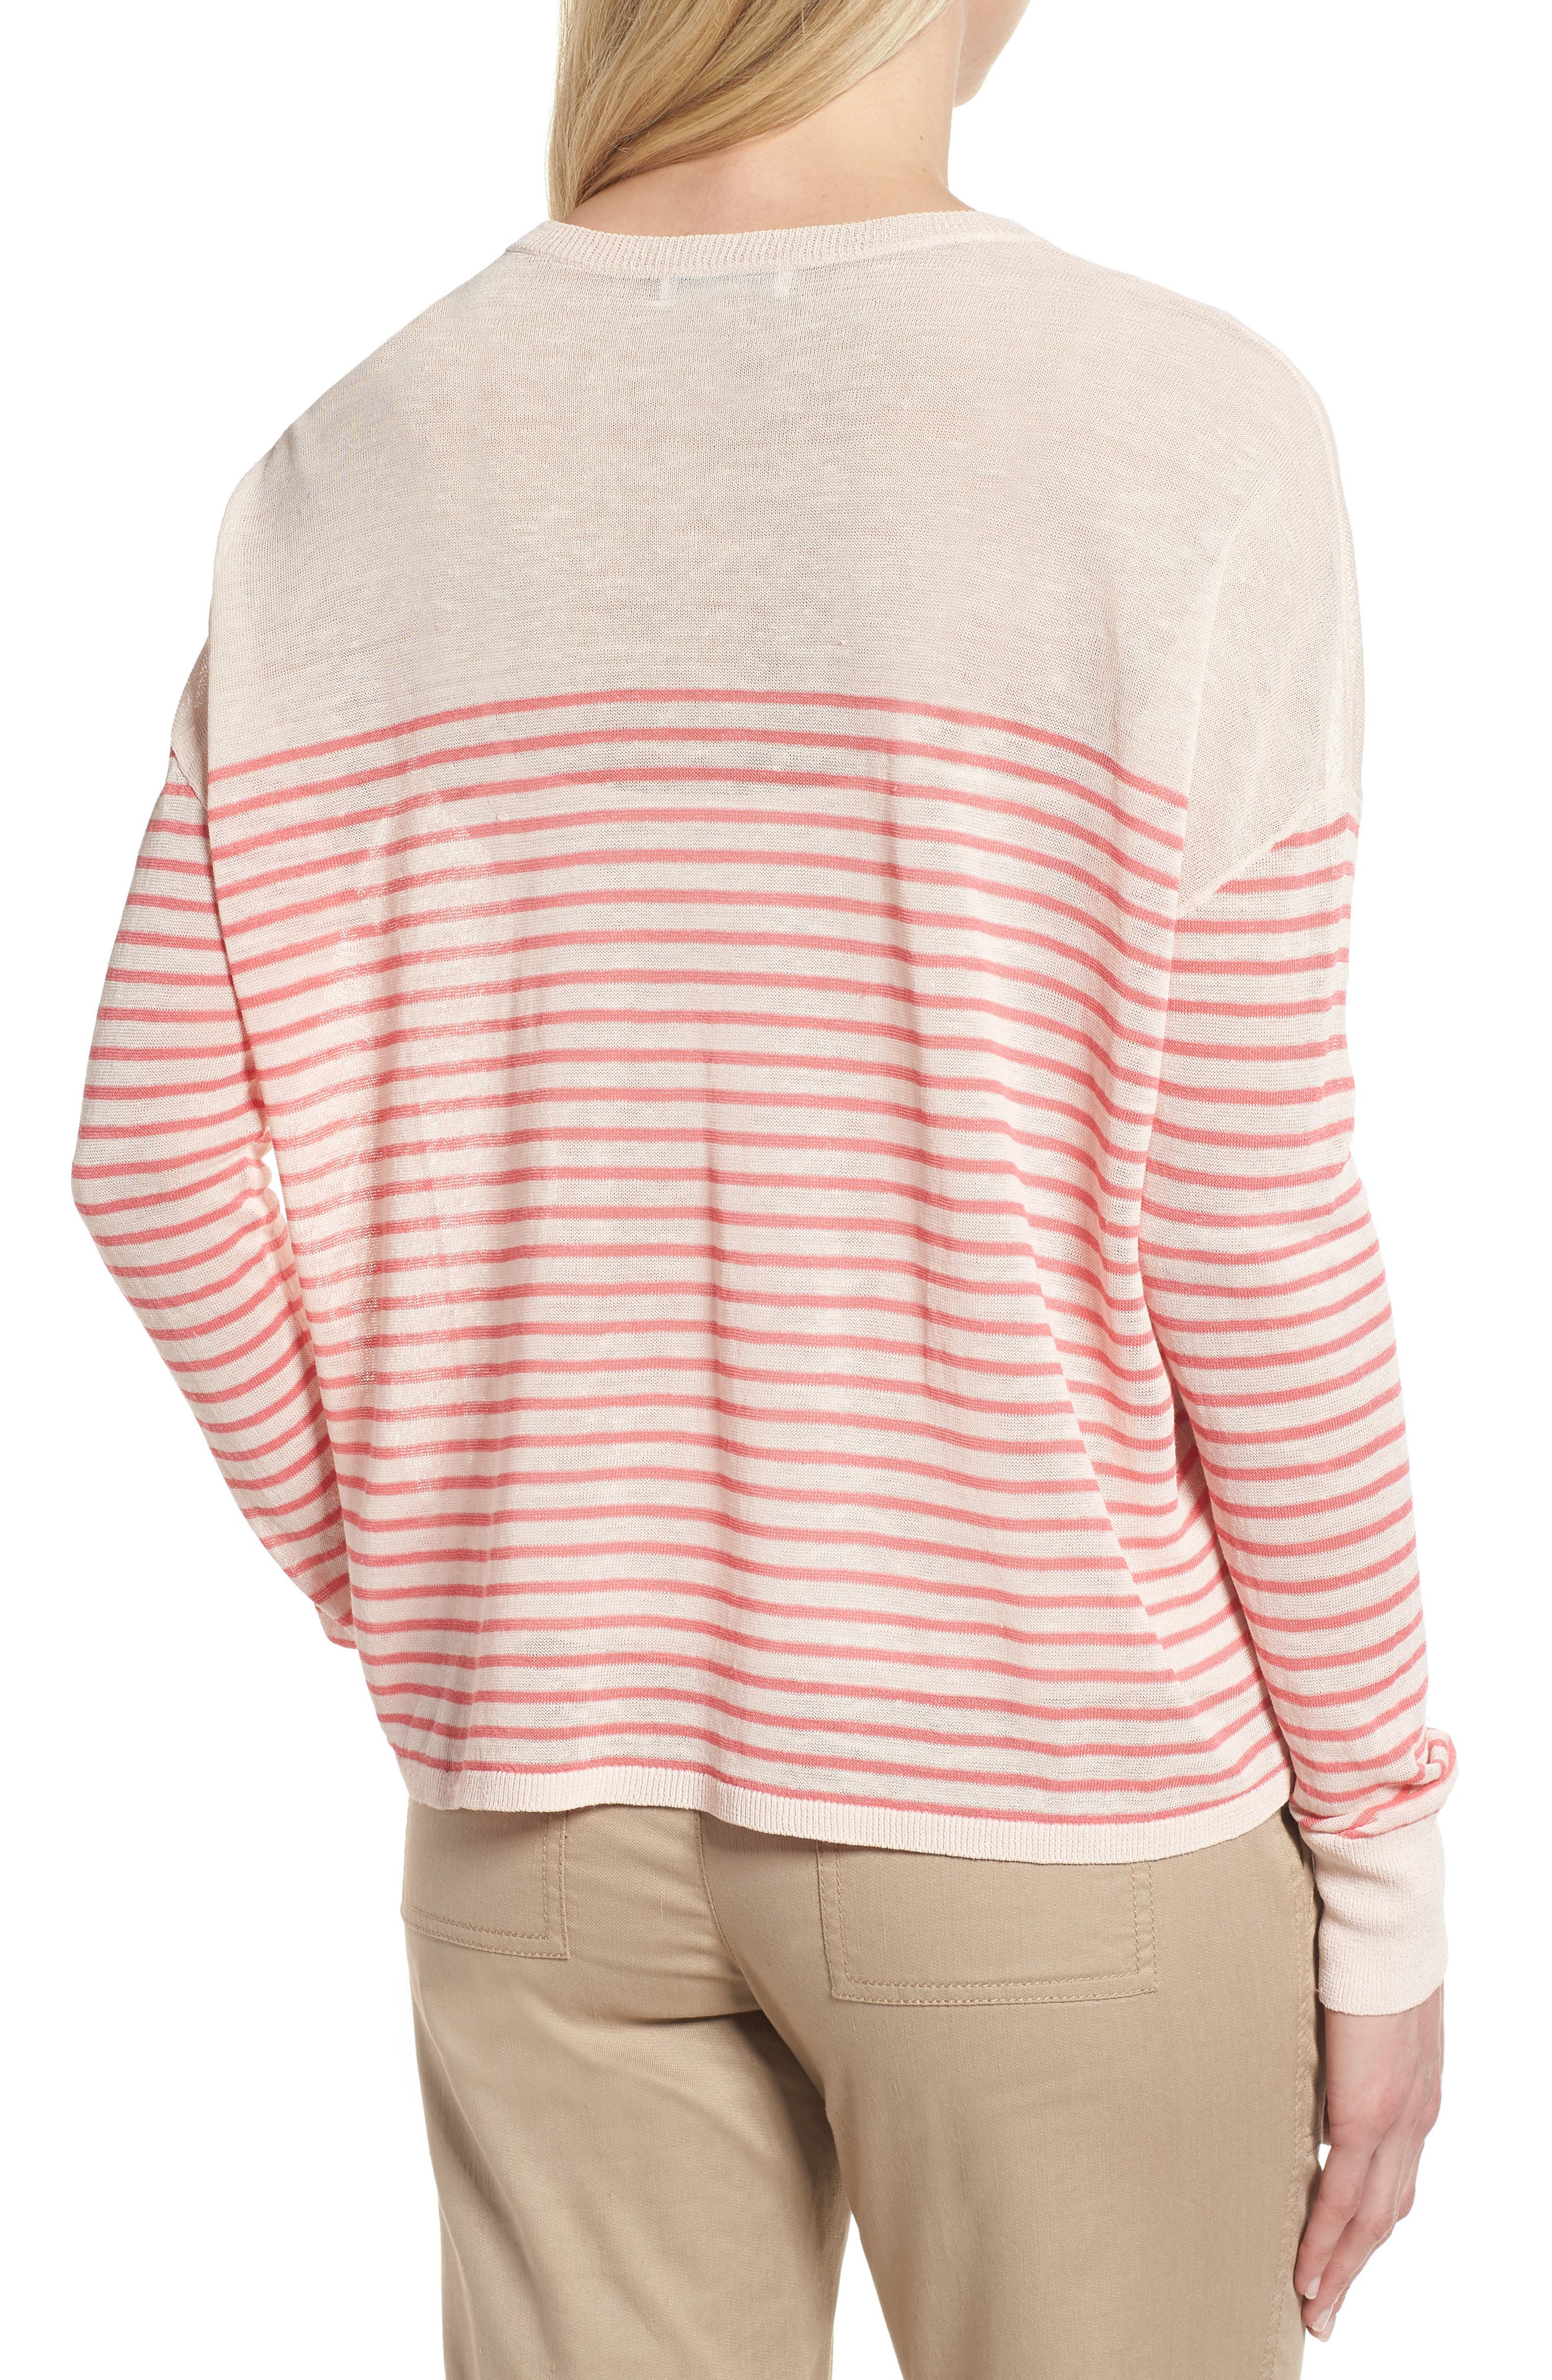 Stripe Linen Blend Sweater,                             Alternate thumbnail 2, color,                             Pink Peony- Coral Rose Stripe